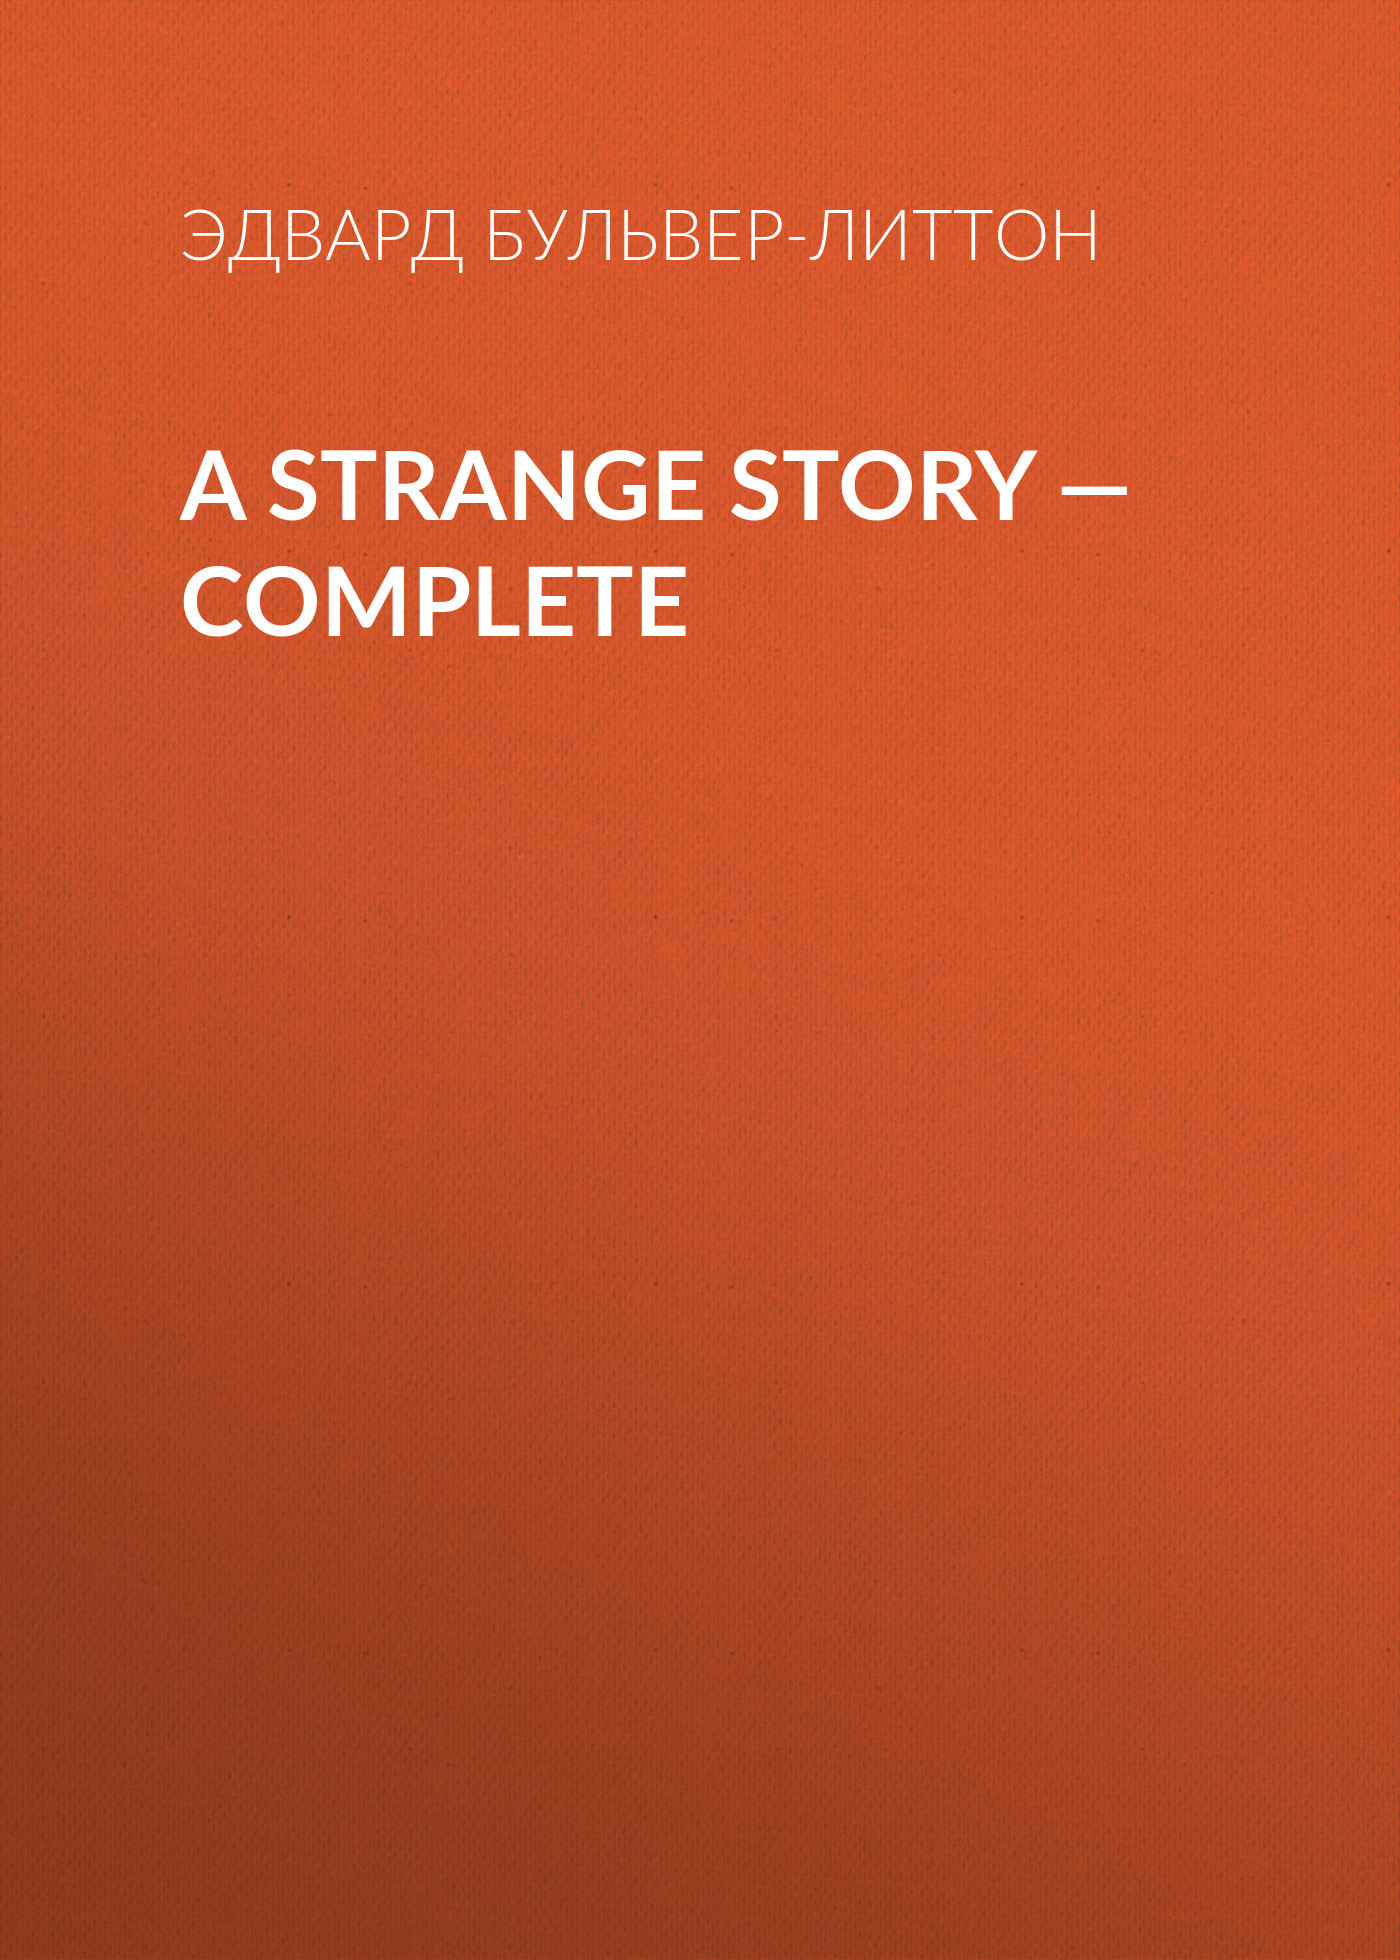 A Strange Story — Complete